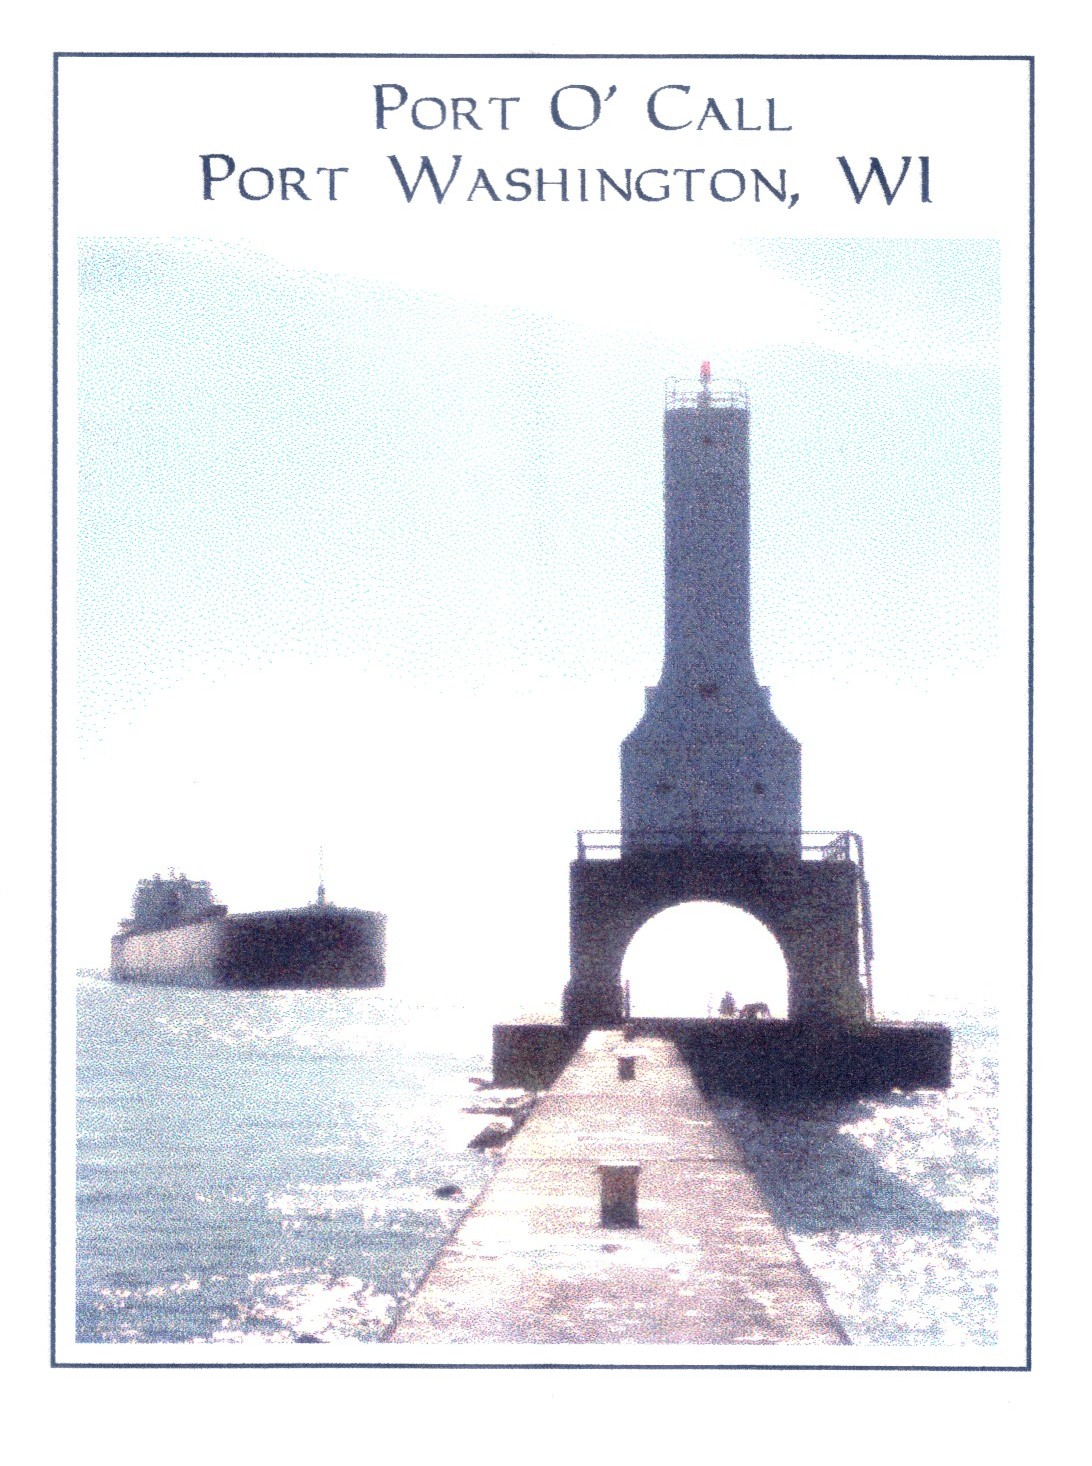 The lighthouse of Port Washington: Port O' Call.  --  Fyrtårnet - et kjent landemerke i Port Washington: Port O' Call.